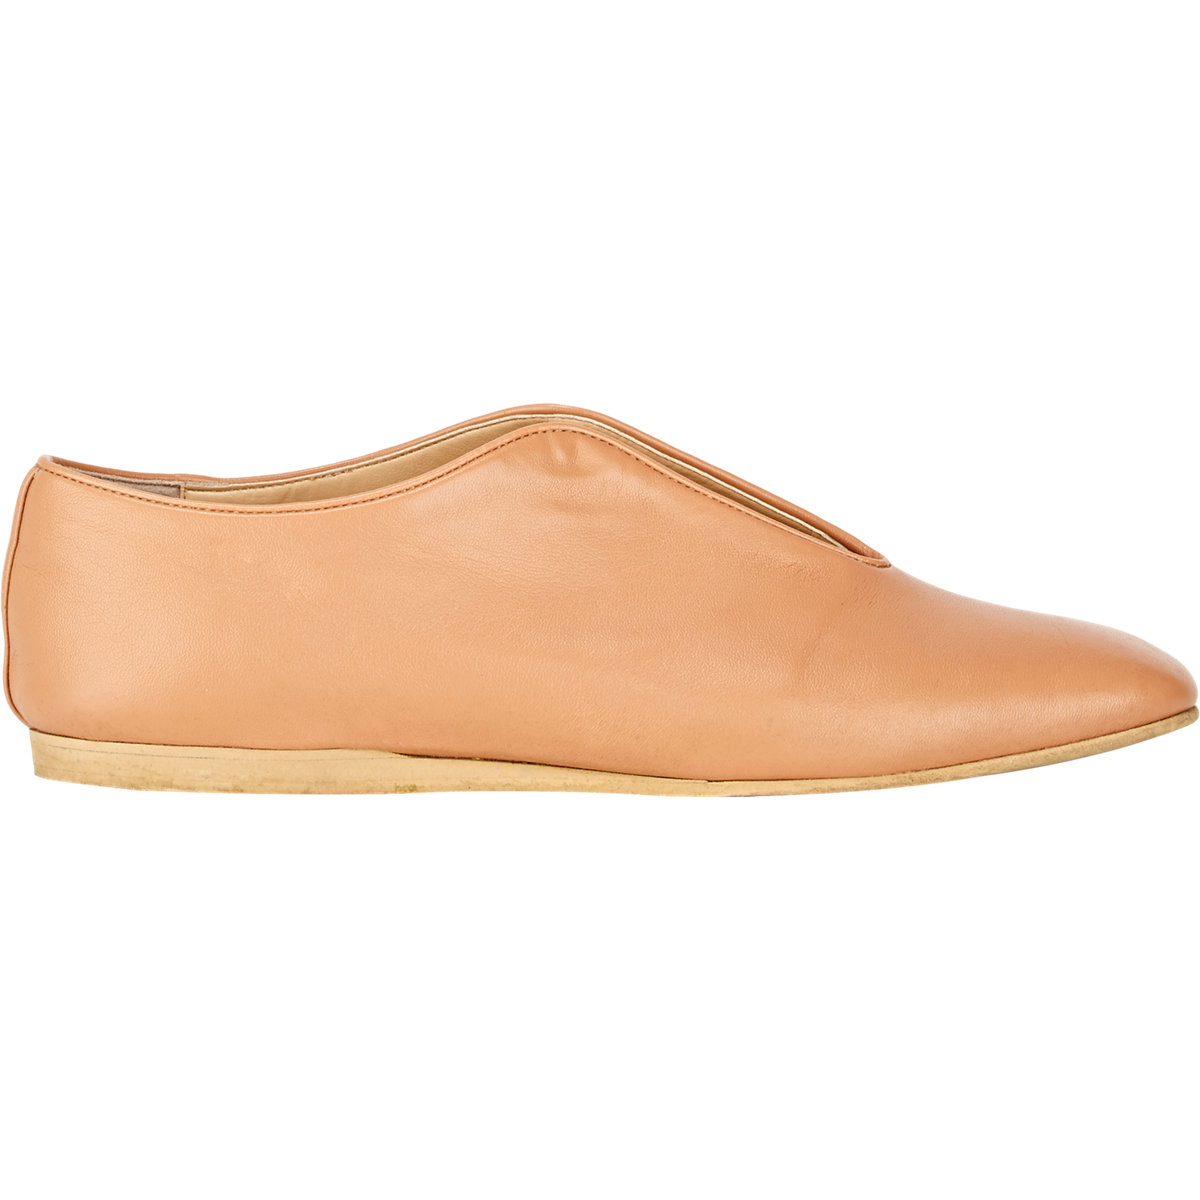 Stella McCartney Vegan Suede Flats cheap online store discount cost clearance wide range of kQ5vbSxOHg